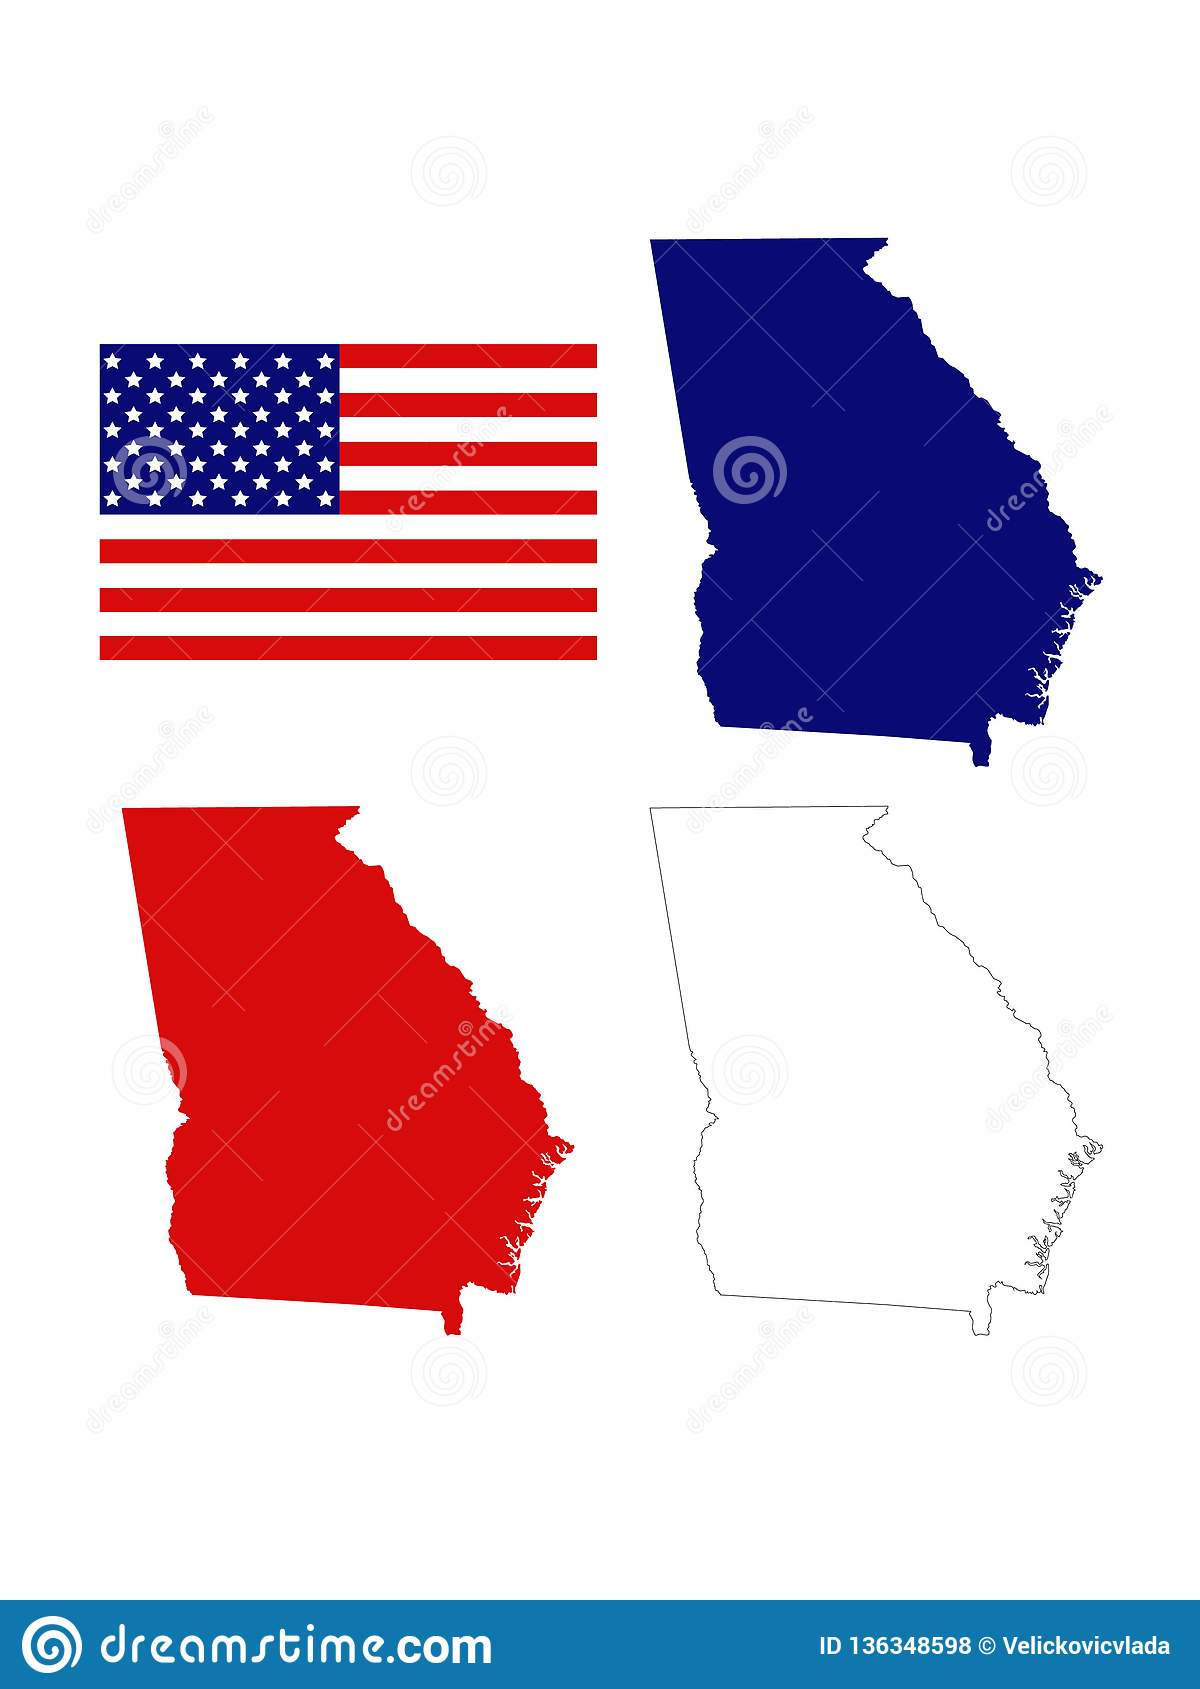 Georgia U. S. State Maps With USA Flag - State In The ...